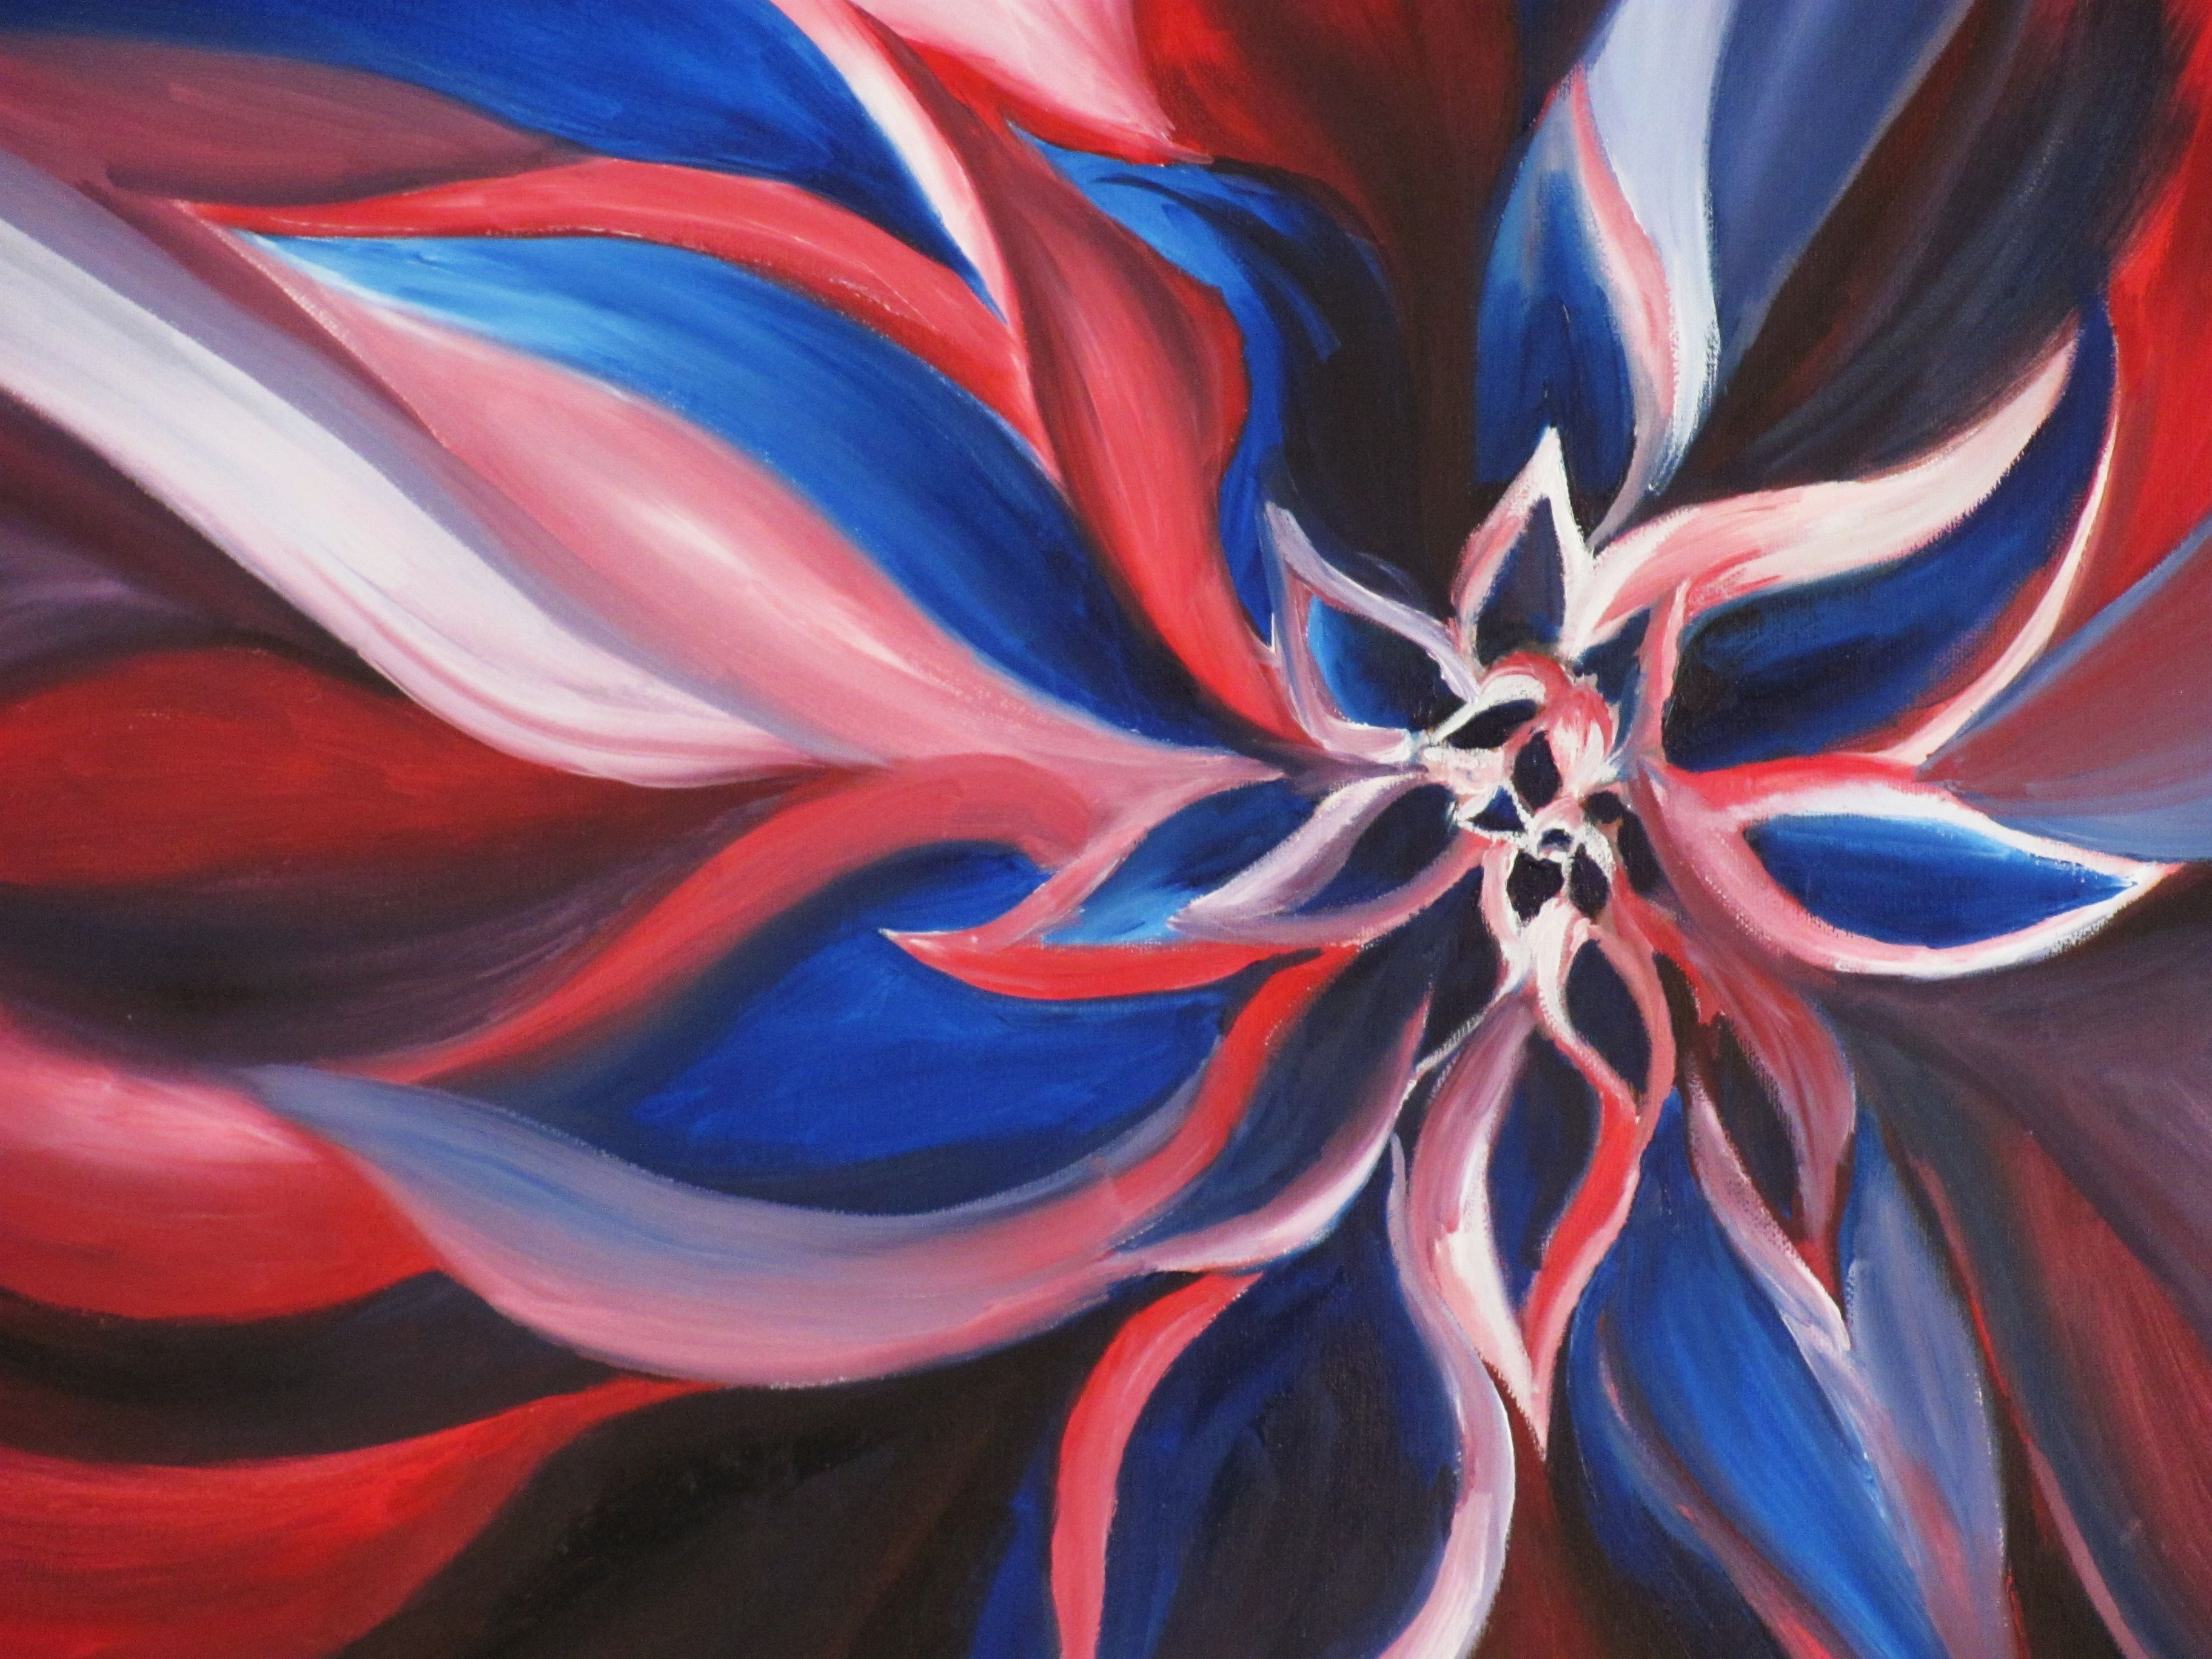 Oil Painting Of A Flower Only Used Red White And Blue Paint